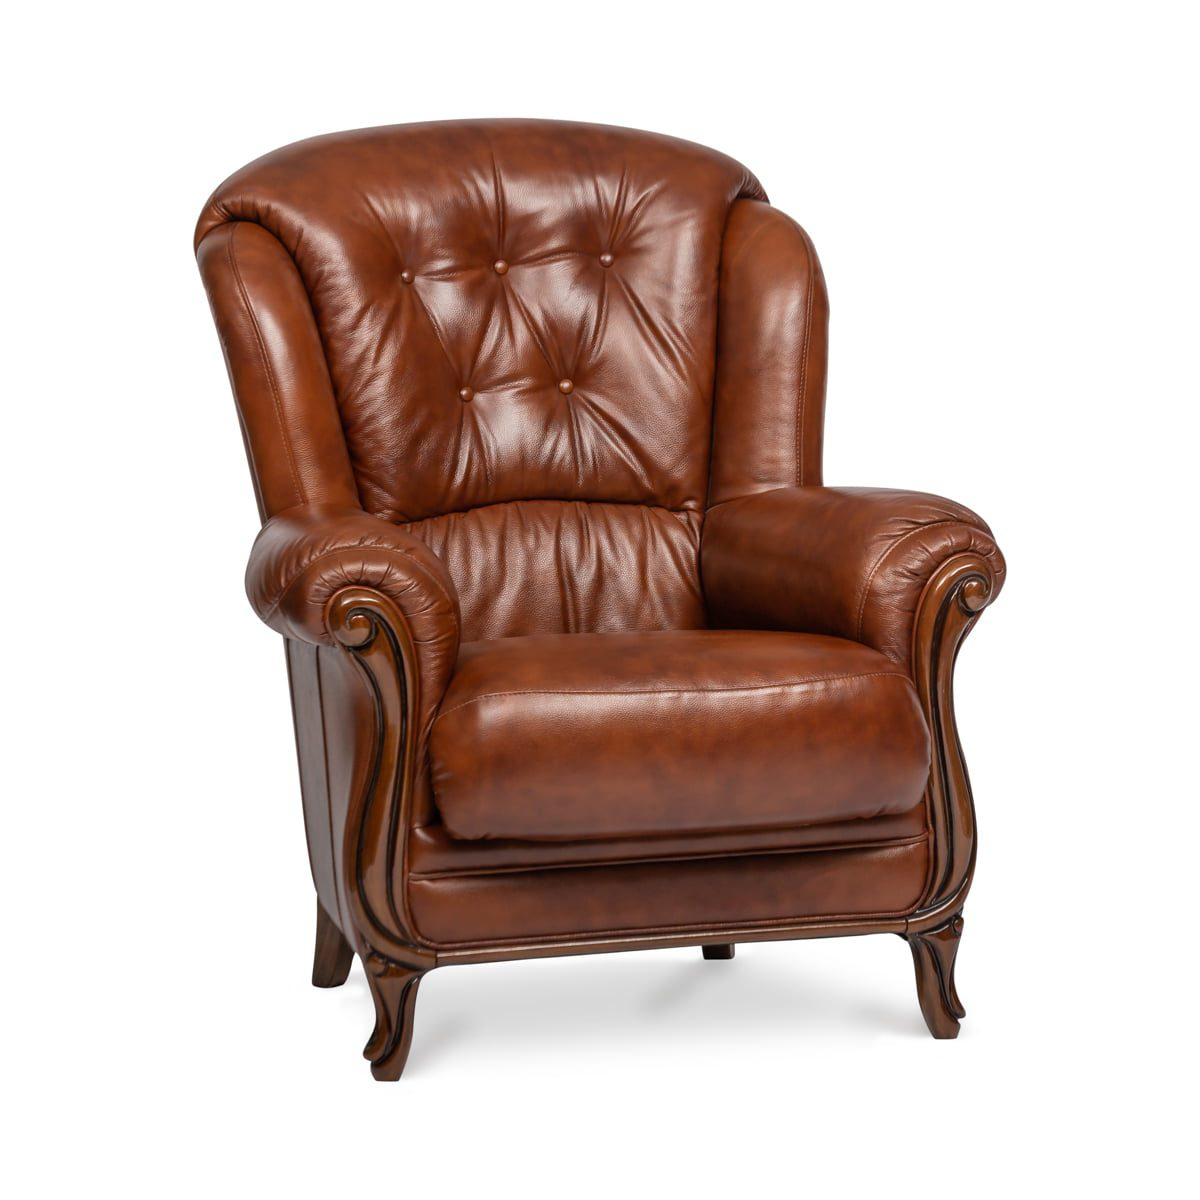 Terni Leather Armchair